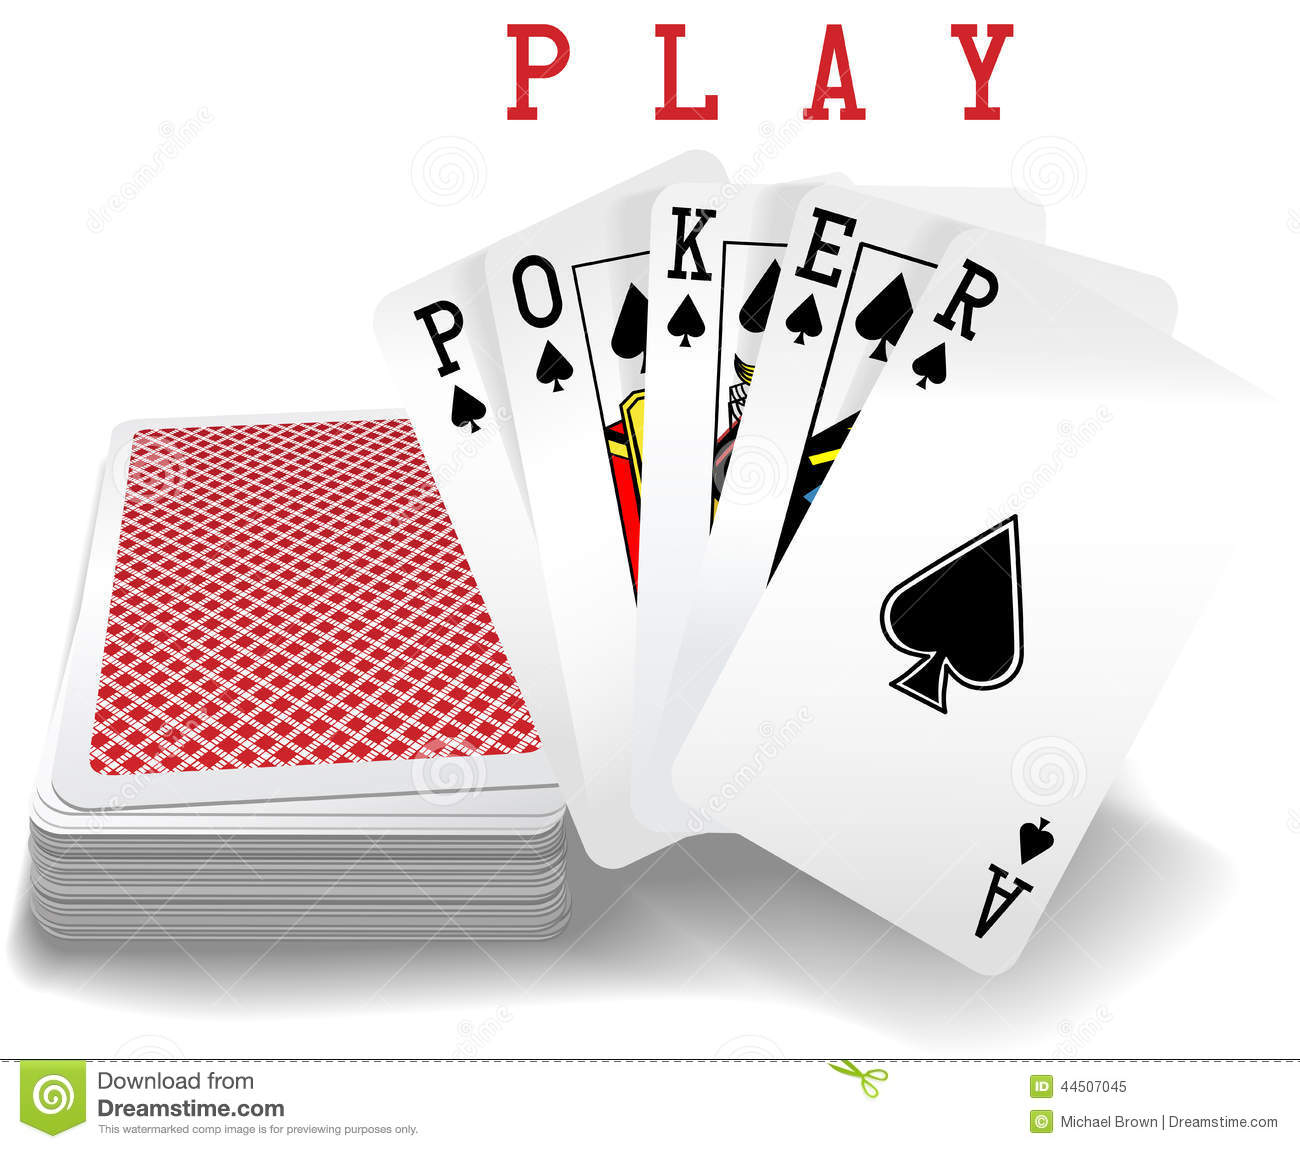 play free spades to win money